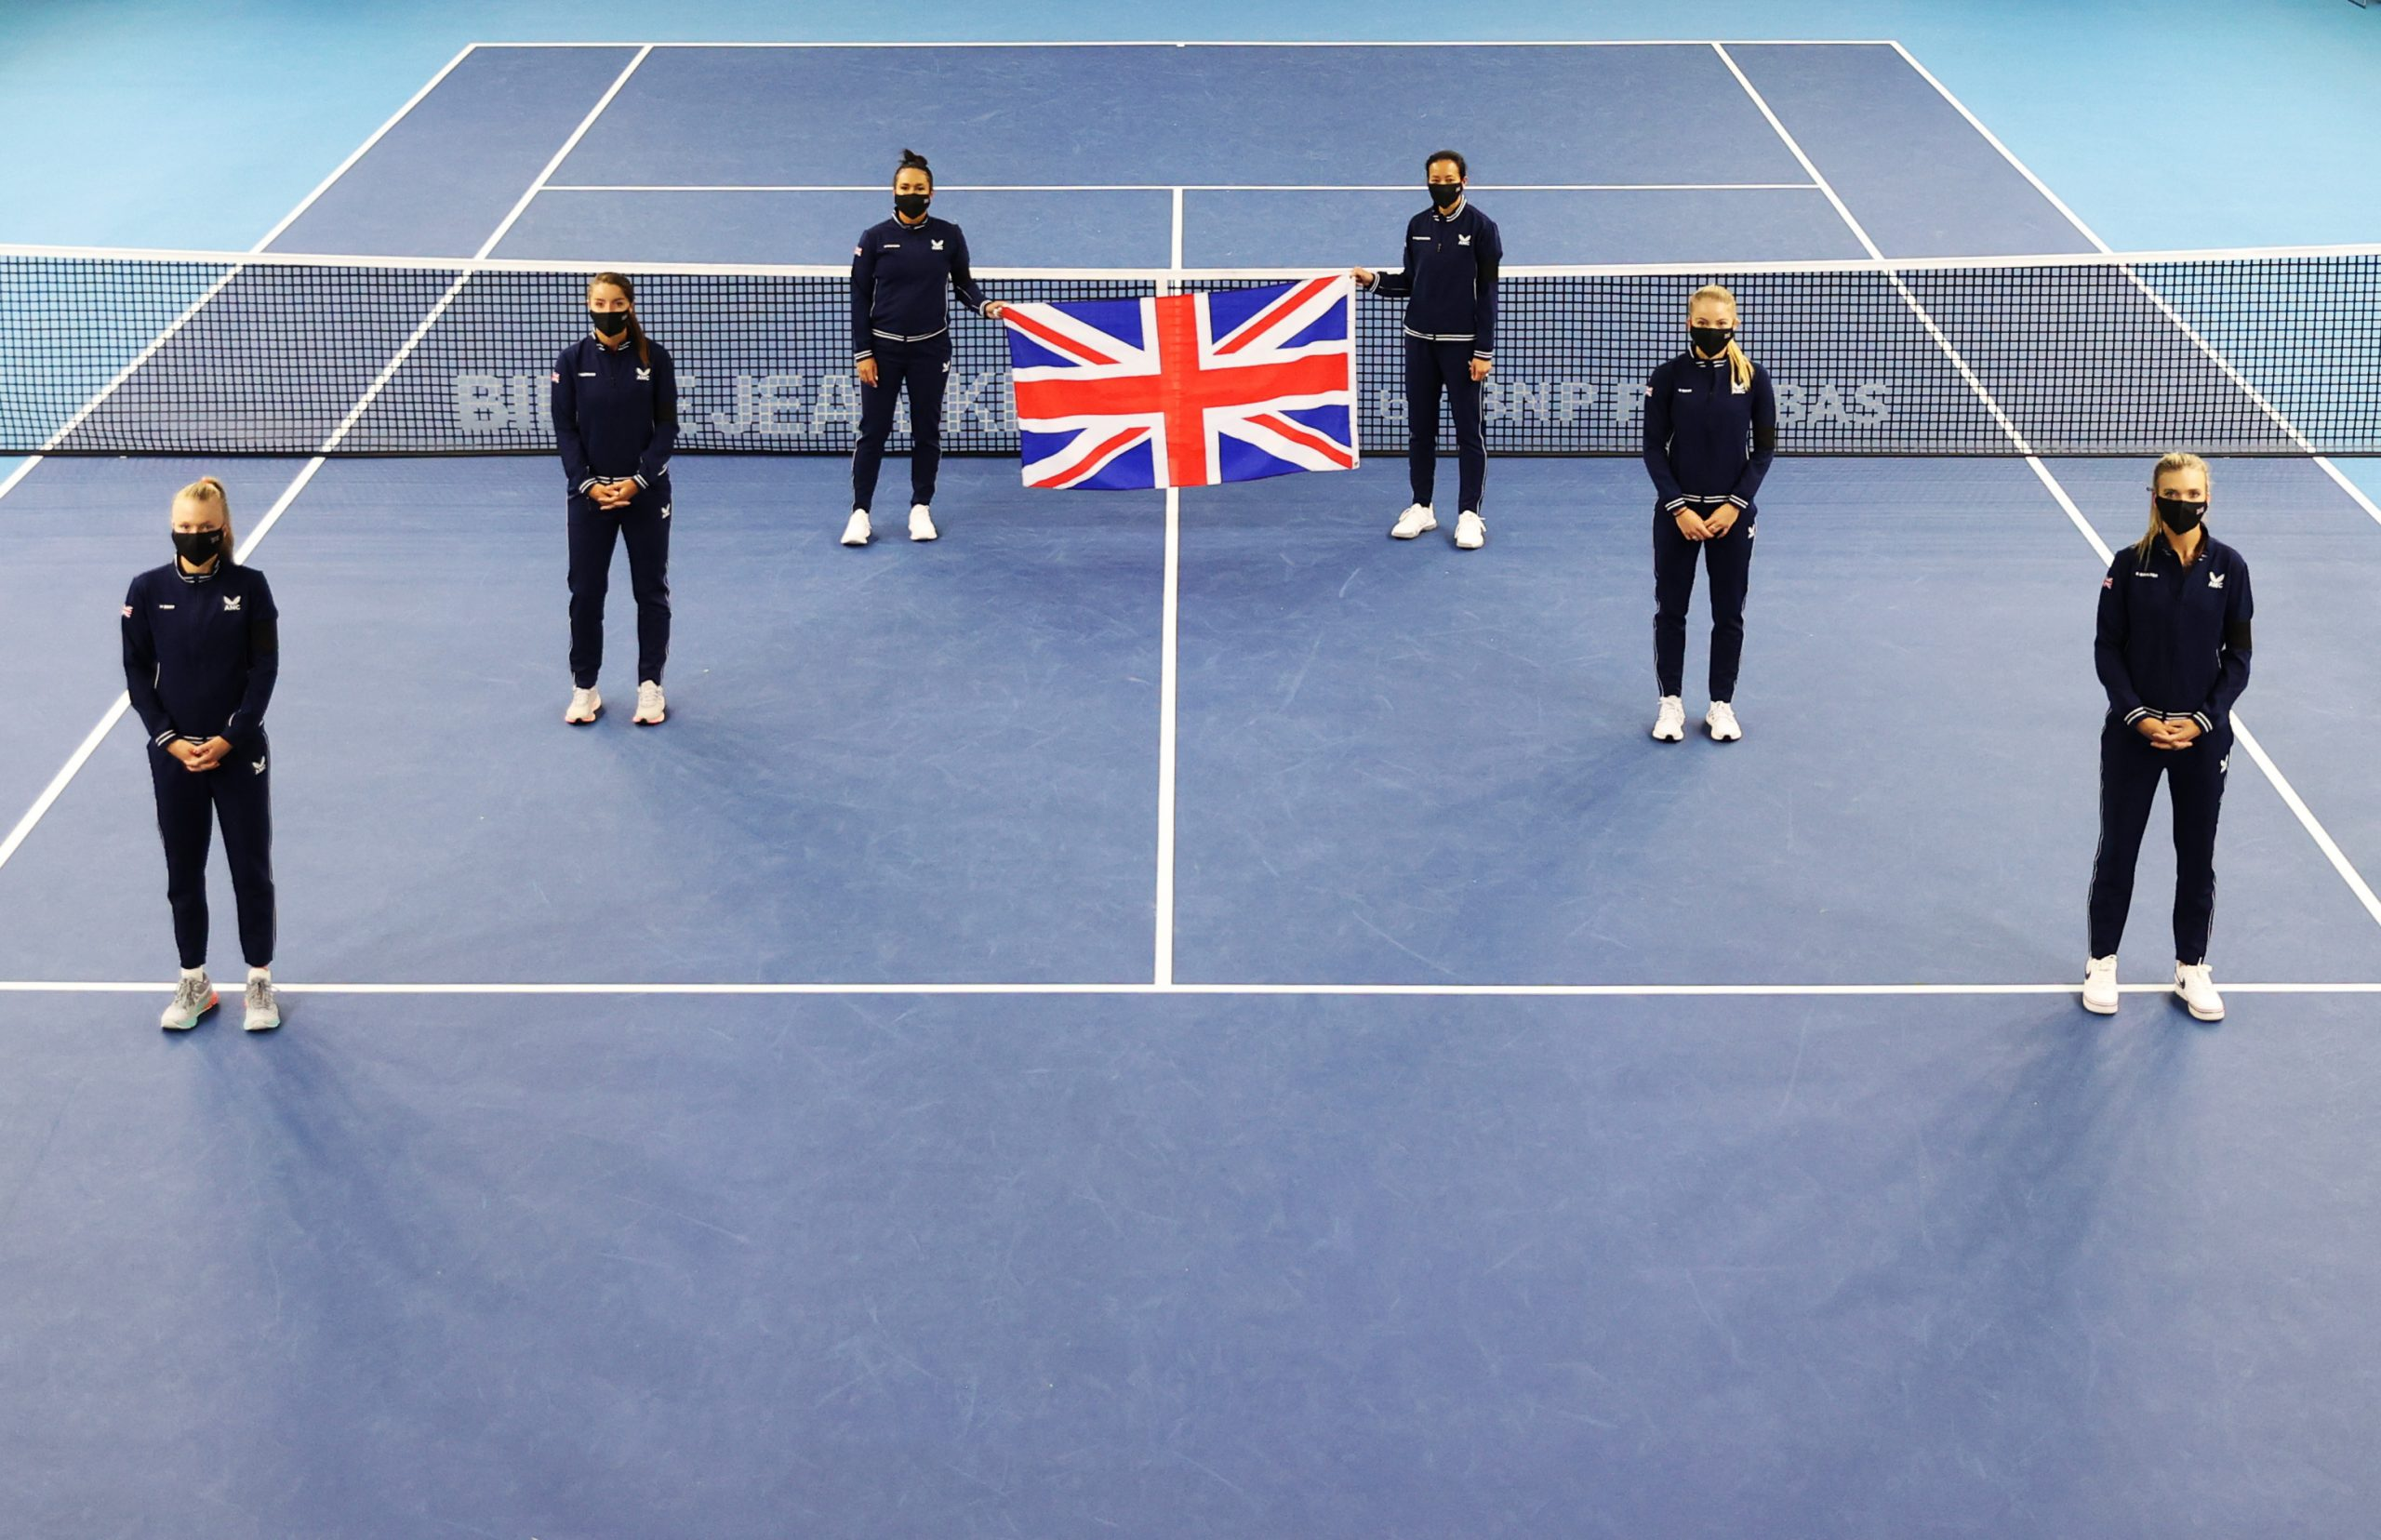 LONDON, ENGLAND - APRIL 15: Team Great Britain pose for a group shot during the draw of the Billie Jean King Cup Play-Offs between Great Britain and Mexico at National Tennis Centre on April 15, 2021 in London, England. (Photo by Naomi Baker/Getty Images for LTA)